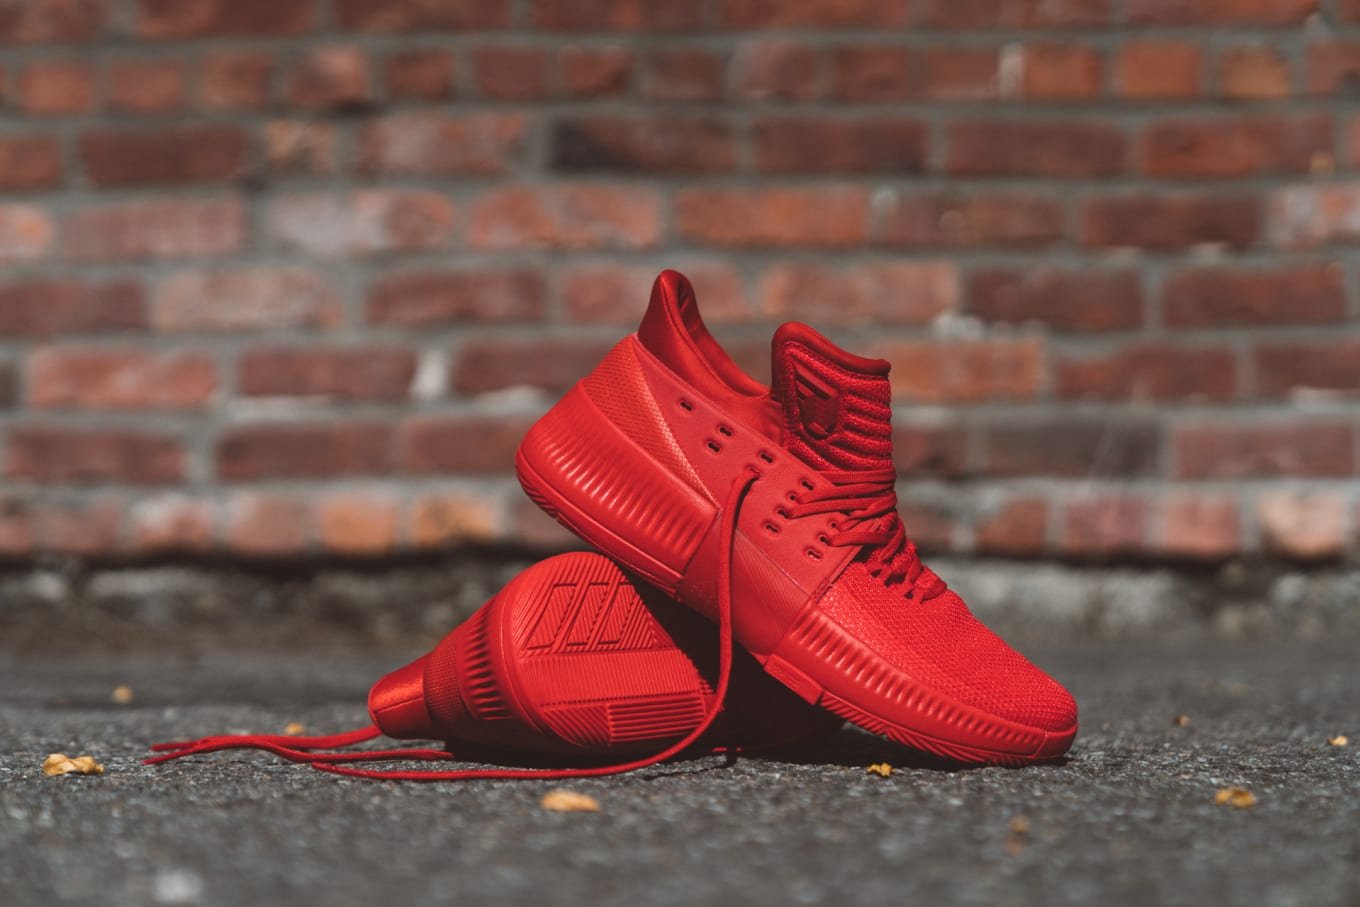 2a5b40831f2e Damian Lillard s Next Signature Sneaker Is Inspired by Bricks. The  inspiration behind the triple-red Adidas Dame 3.